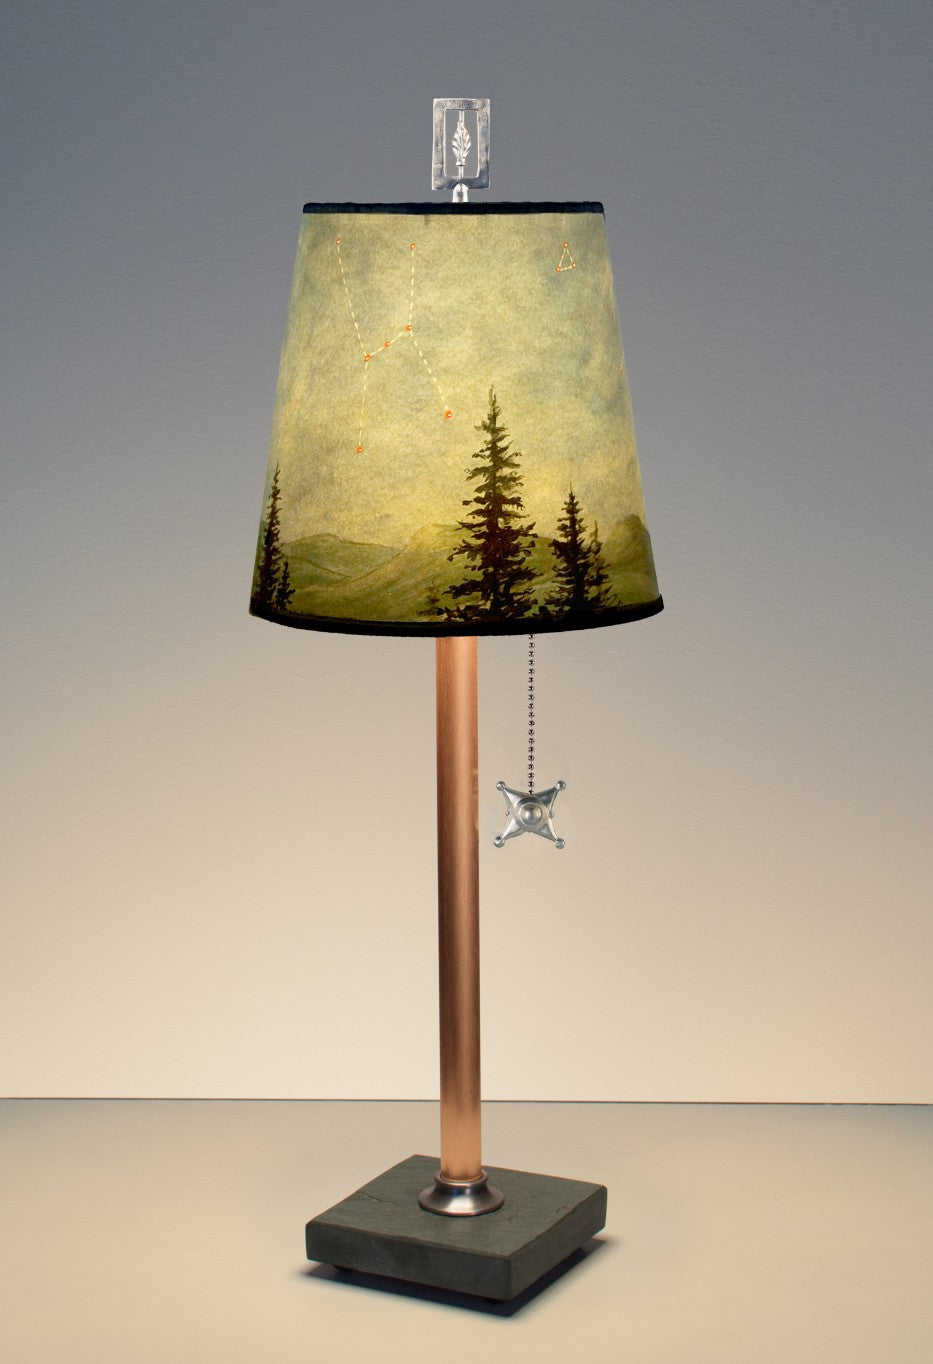 Small Lamp in Midnight Sky